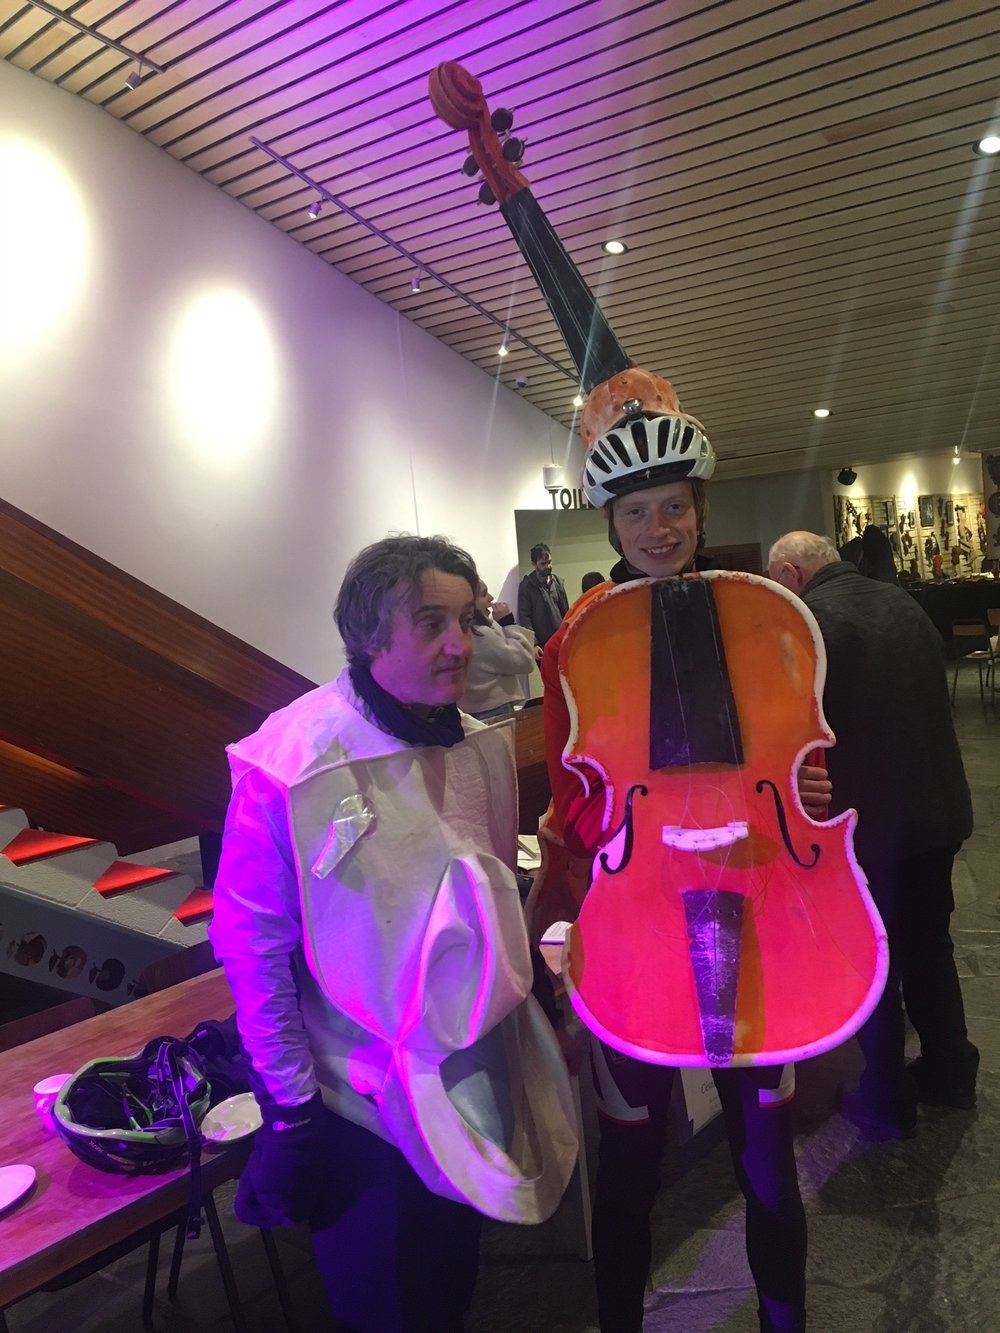 Because sometimes you just need a cycling violist...